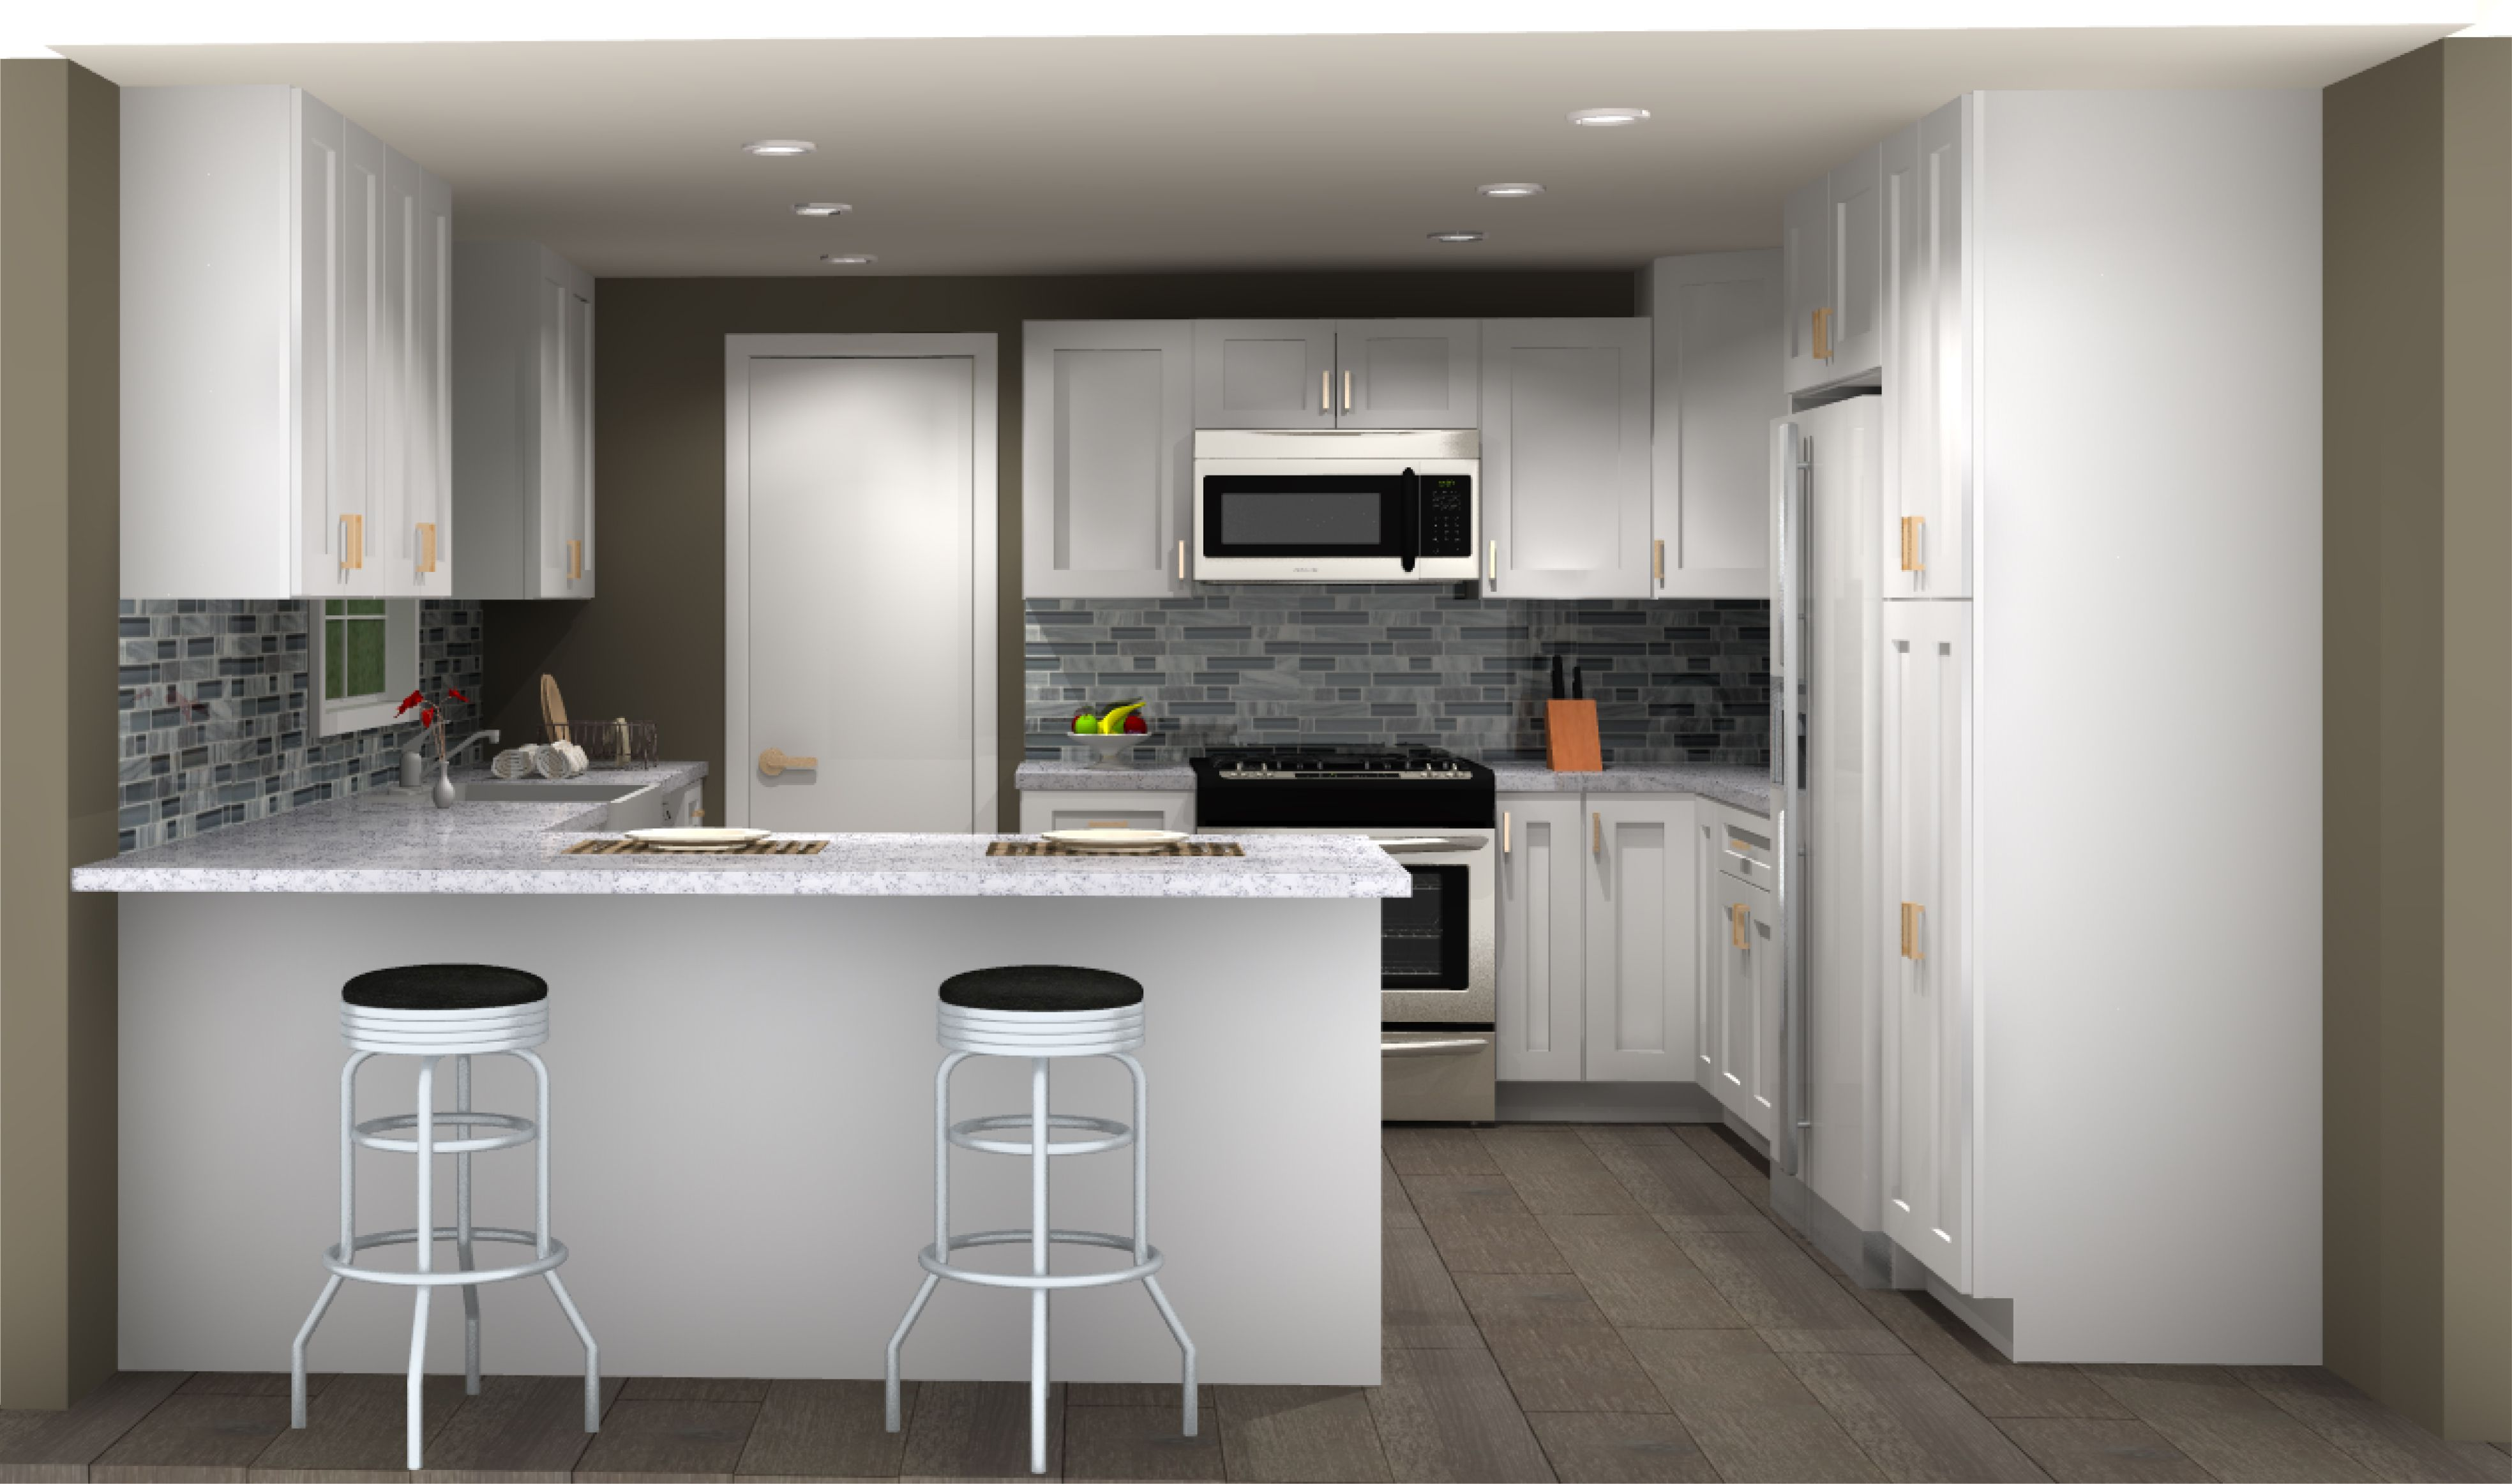 Lily Ann offers FREE 3D kitchen designs. Head to